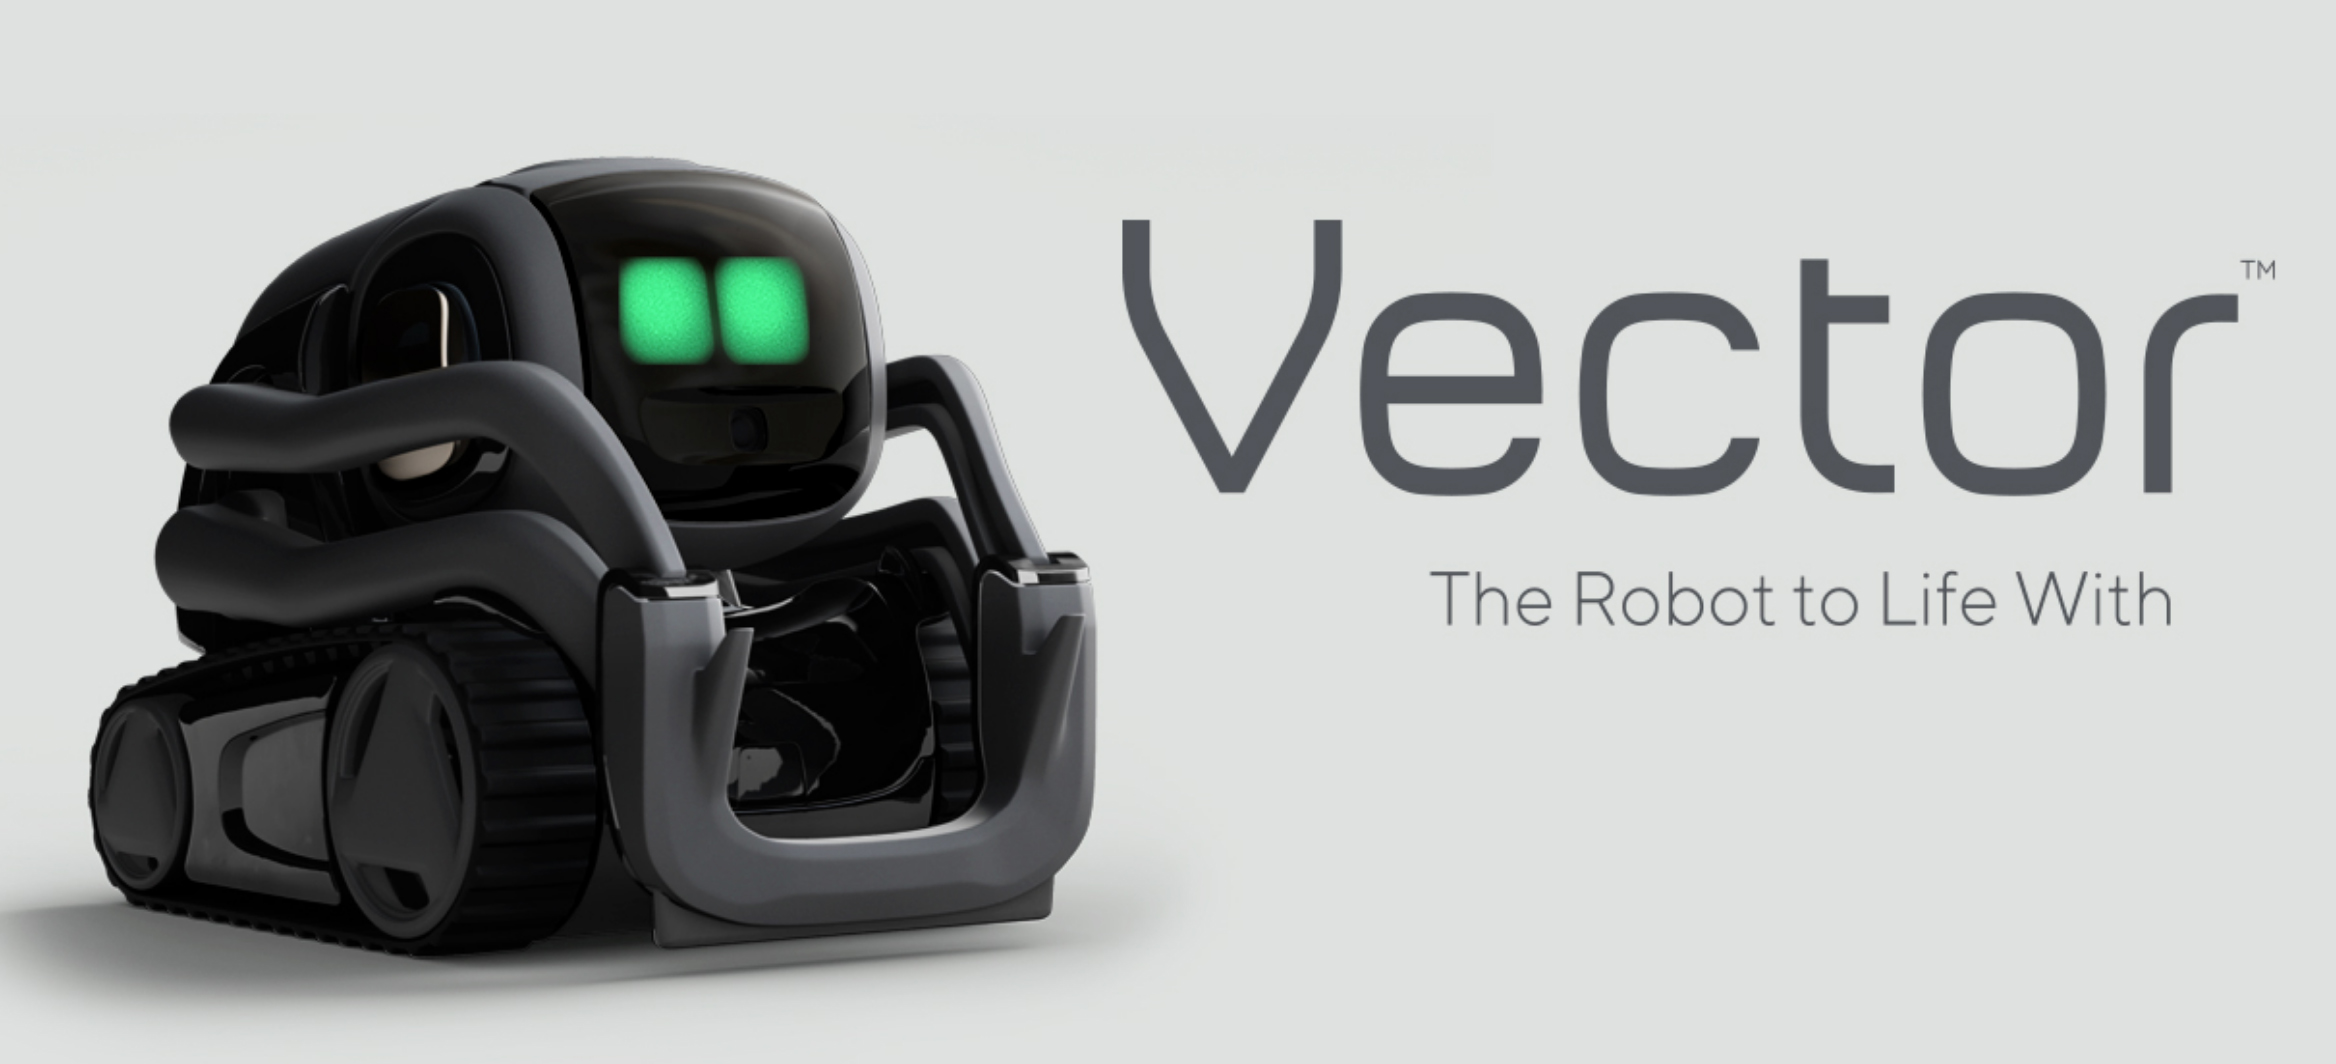 anki announces vector its newest intelligent robot for